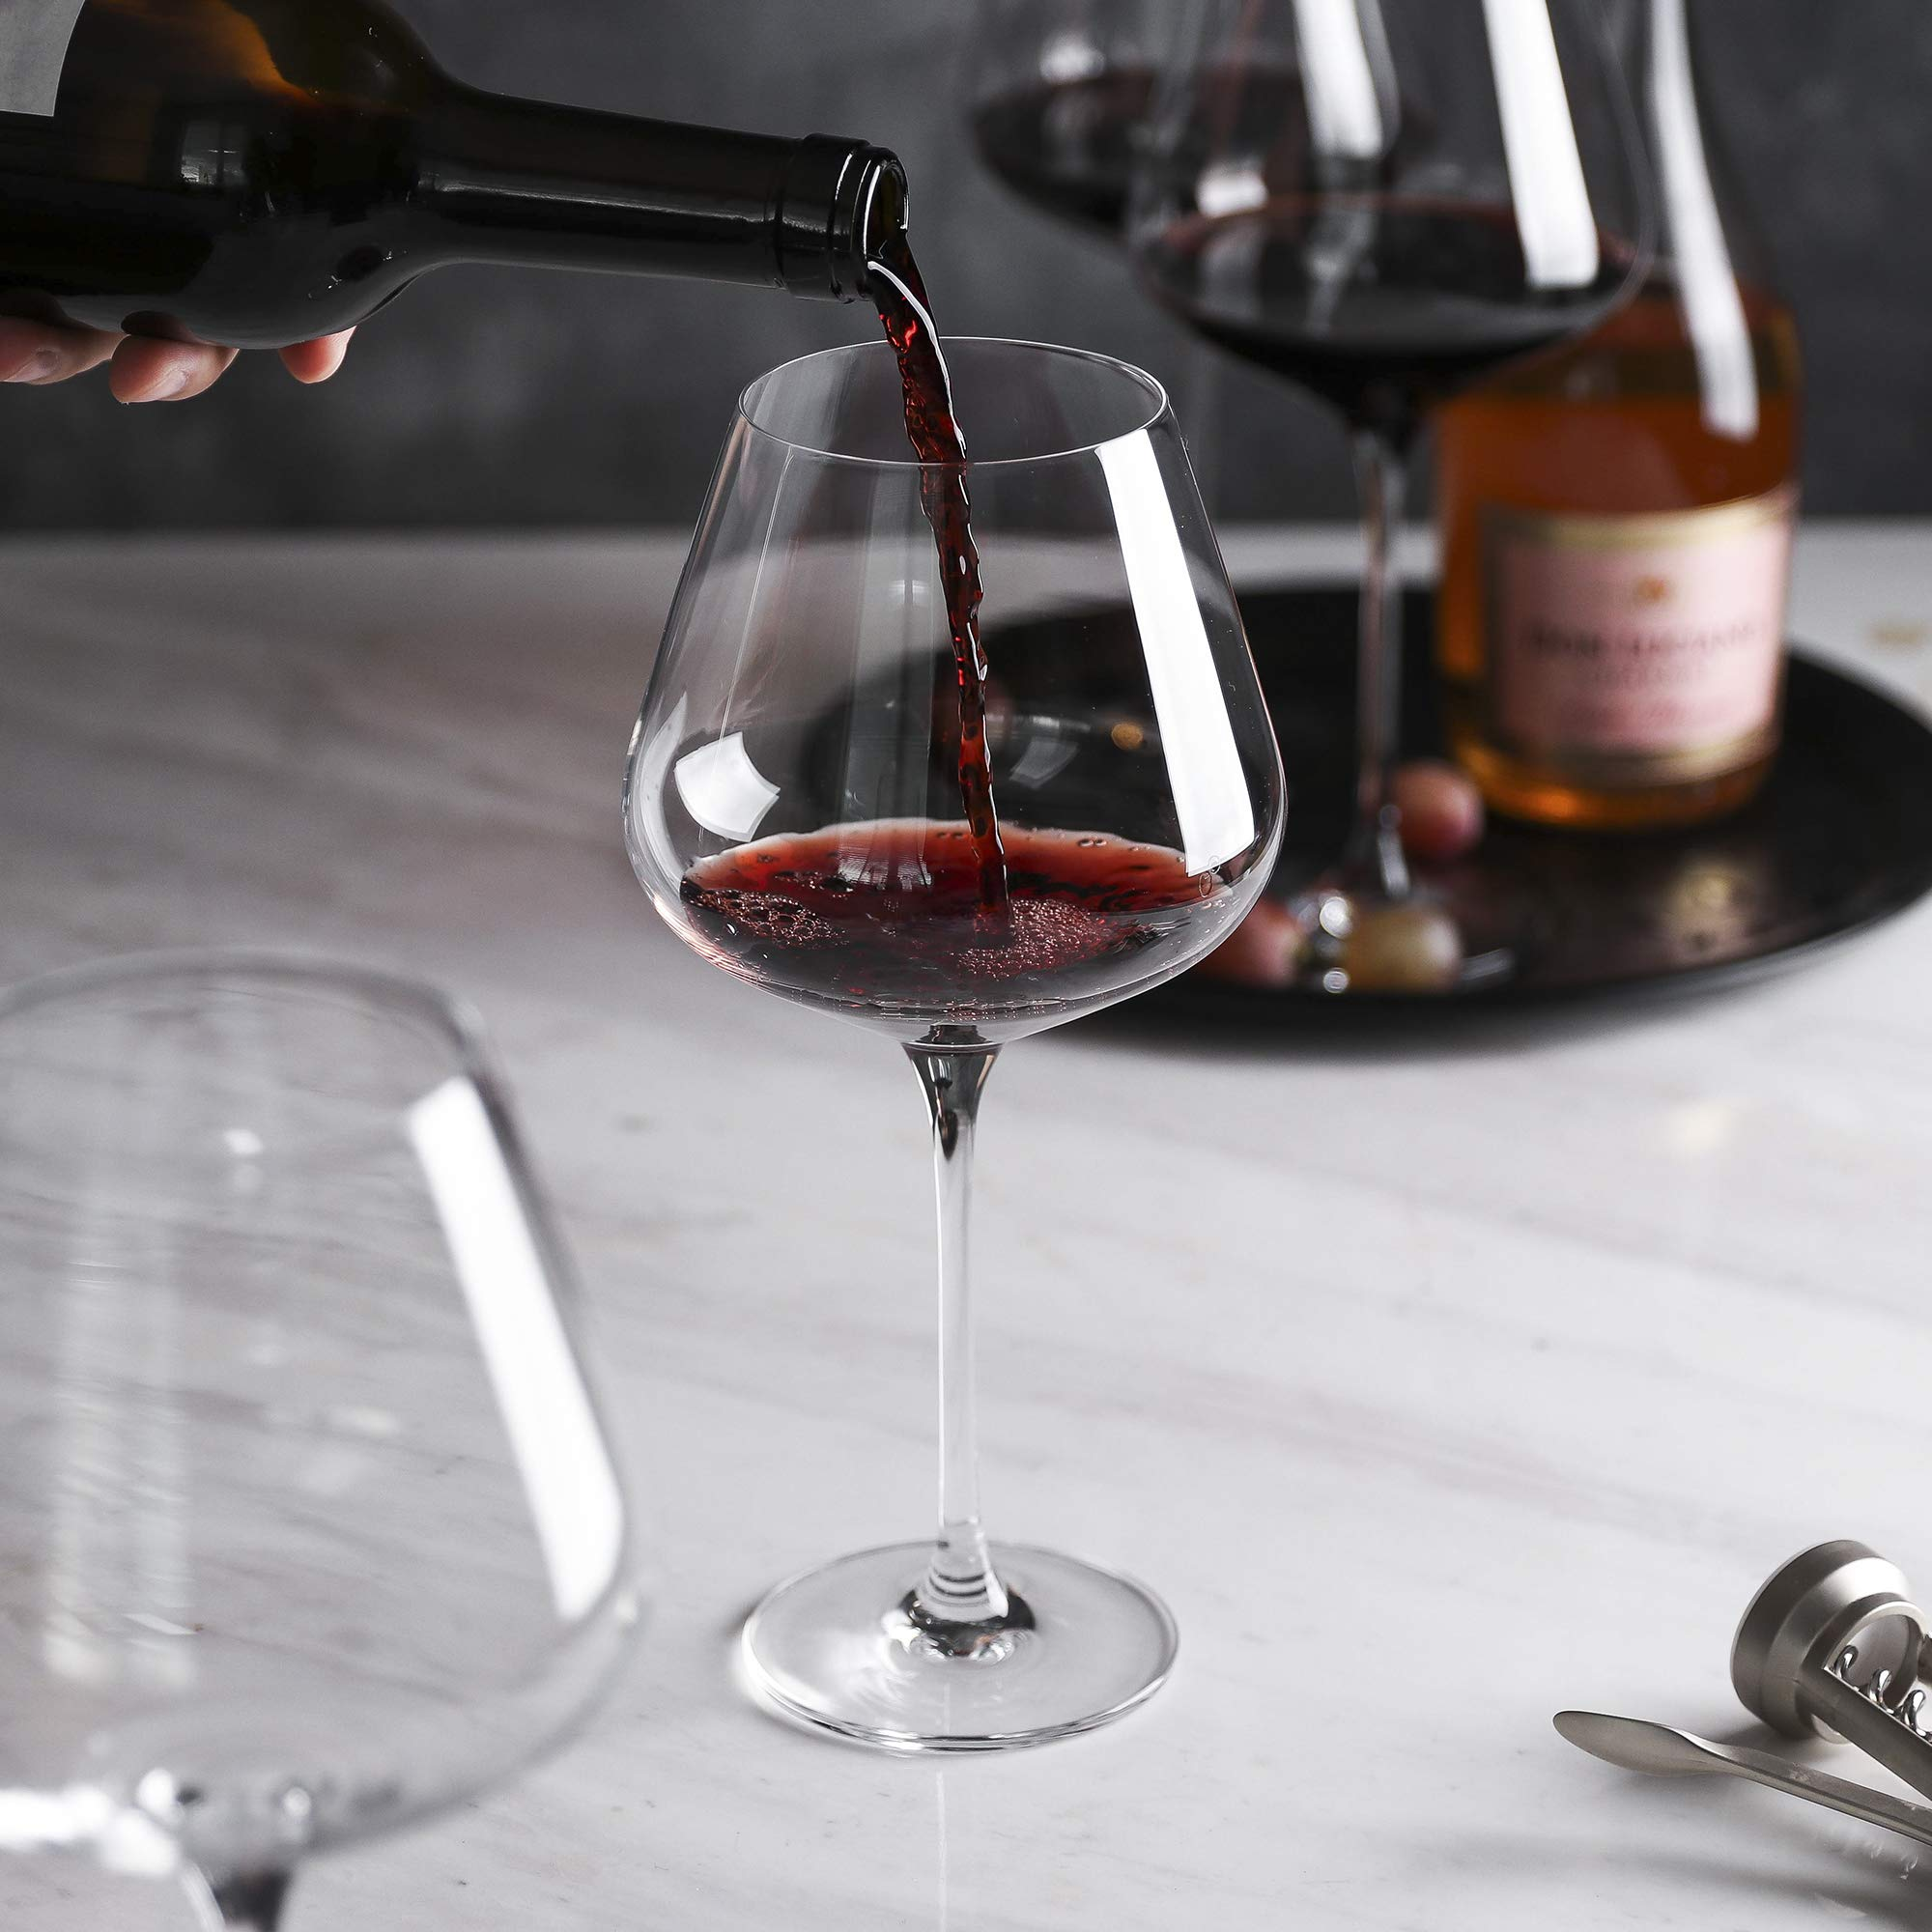 Red Wine Glasses - Crystal Glass - Lead Free - Wine Glasses Set of 4 (29 Ounce) by WH Housewares (Image #5)